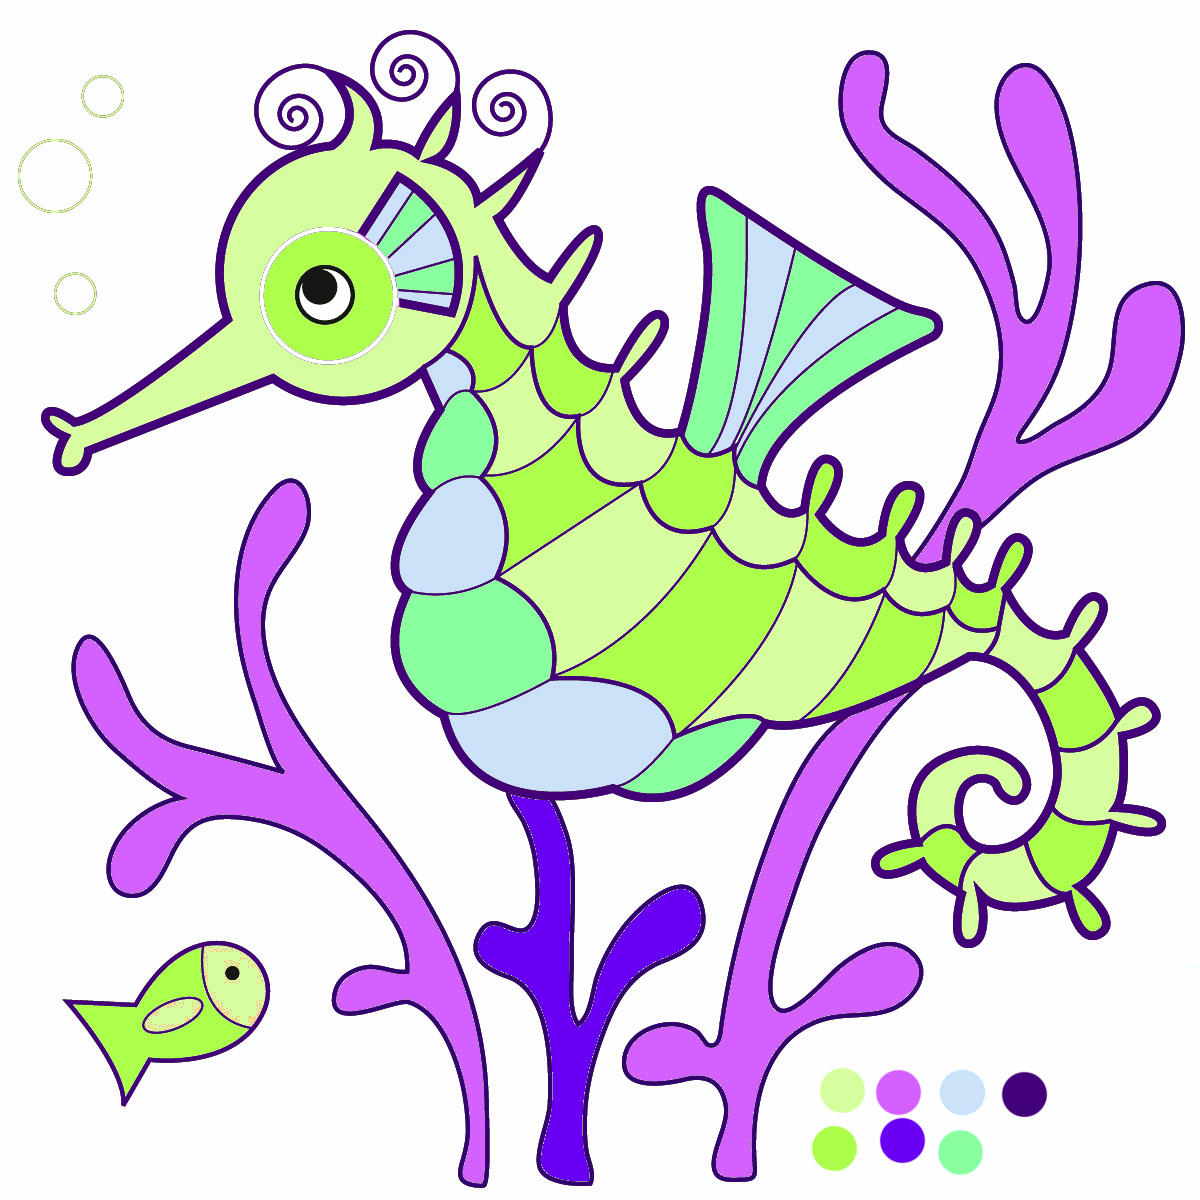 Seahorse clipart #3, Download drawings